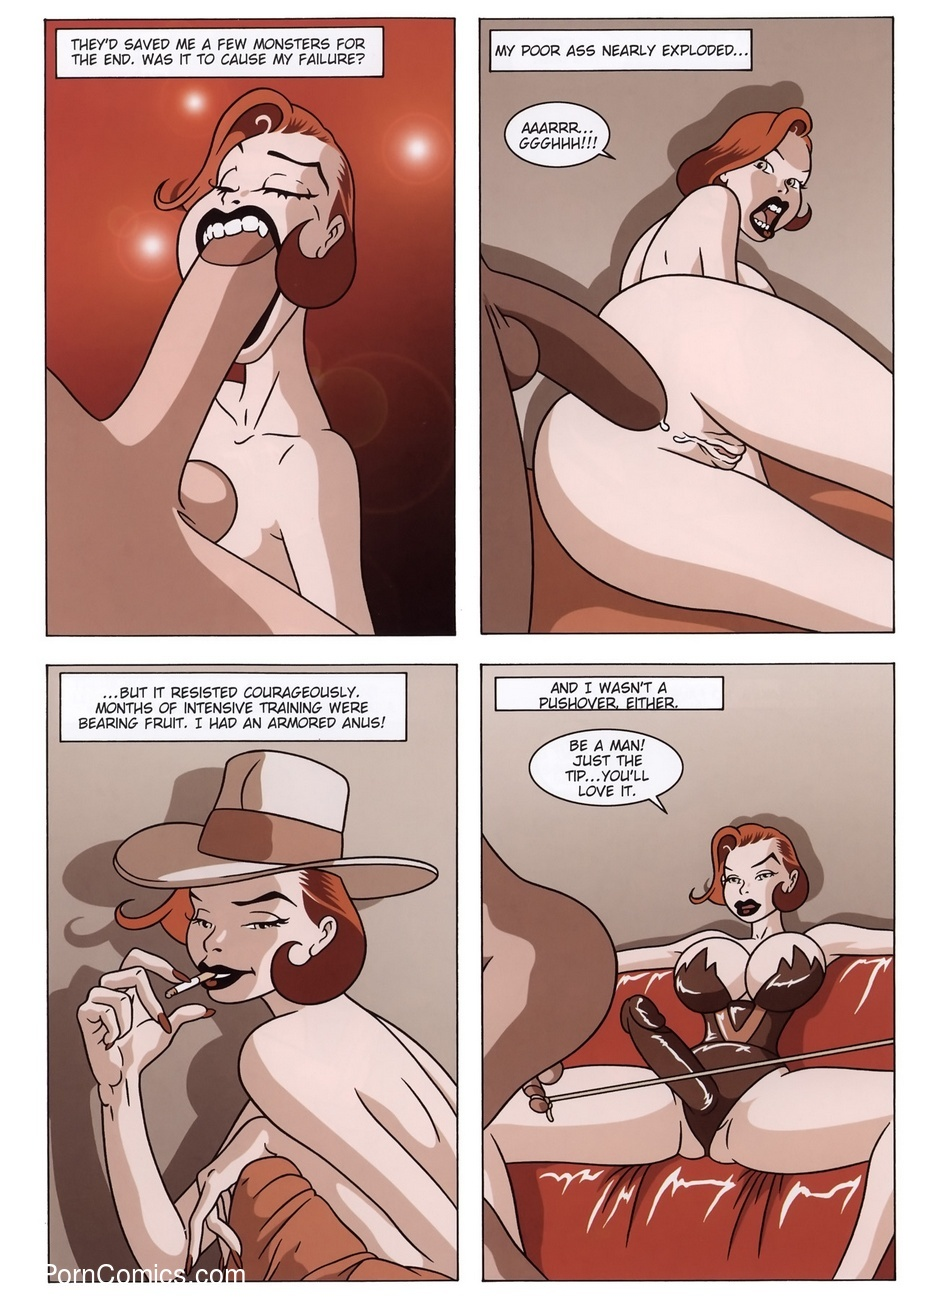 The 110 Blowjobs 40 free sex comic